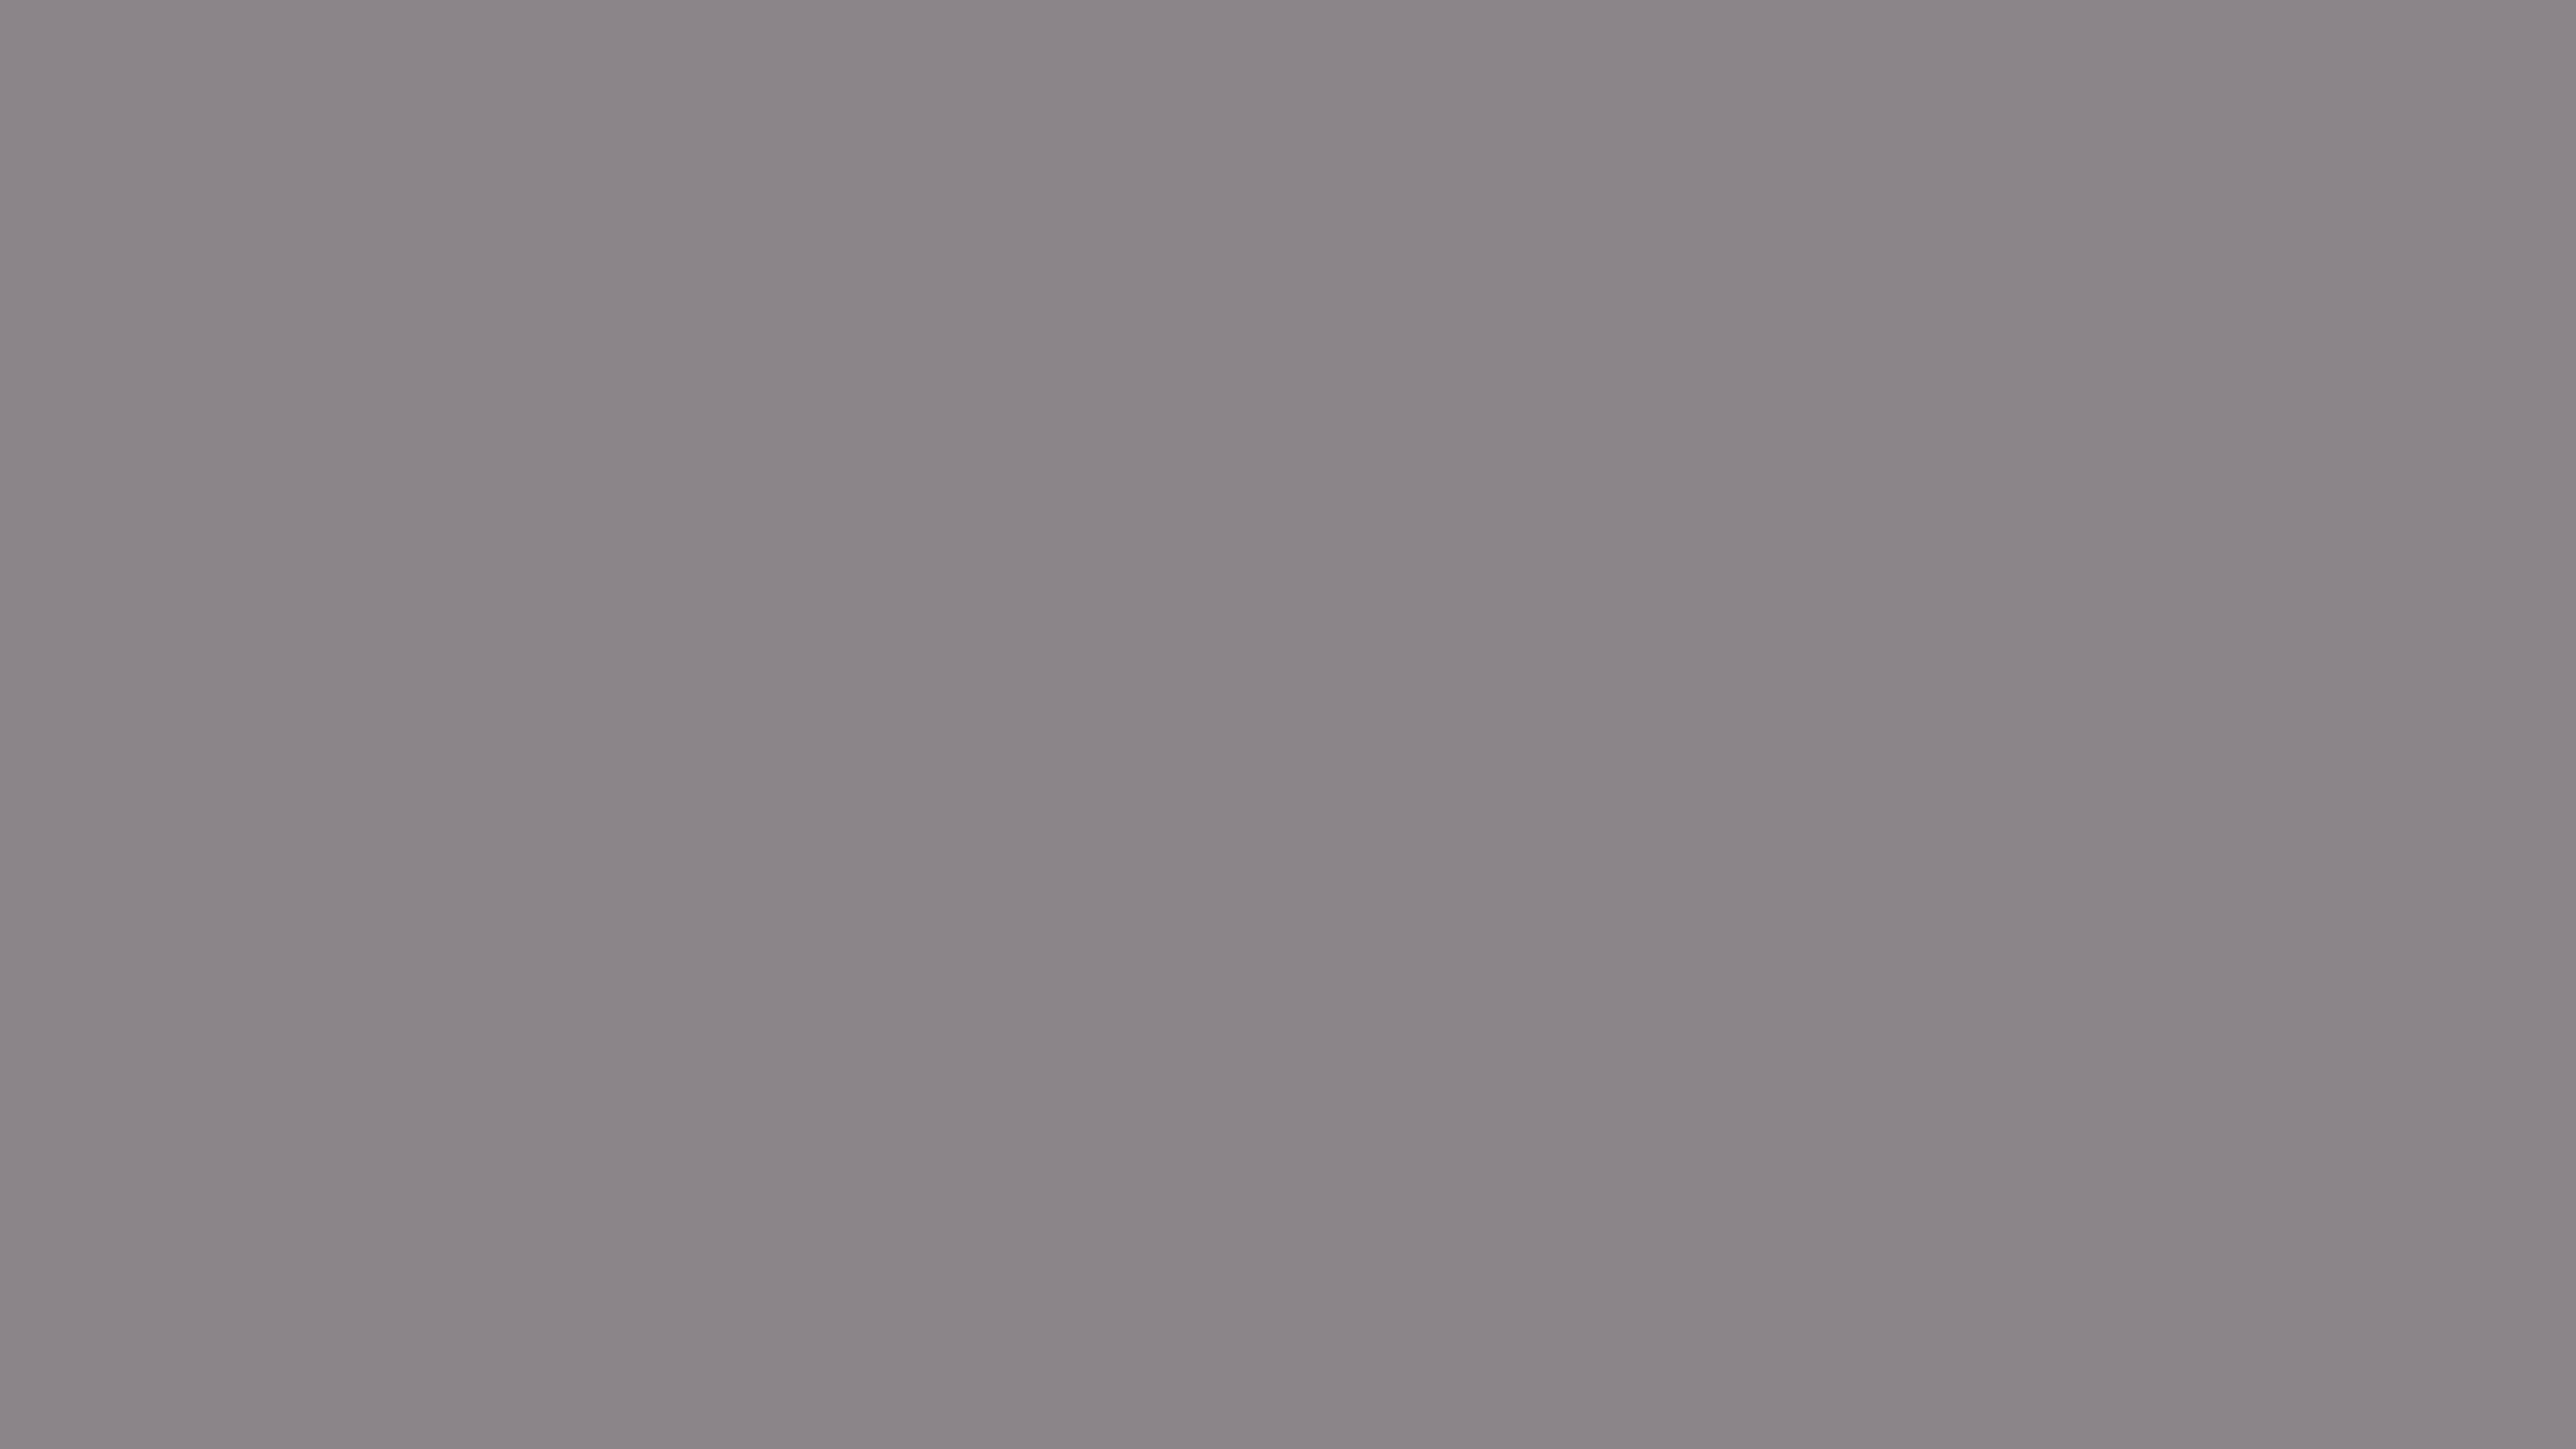 3840x2160 Taupe Gray Solid Color Background